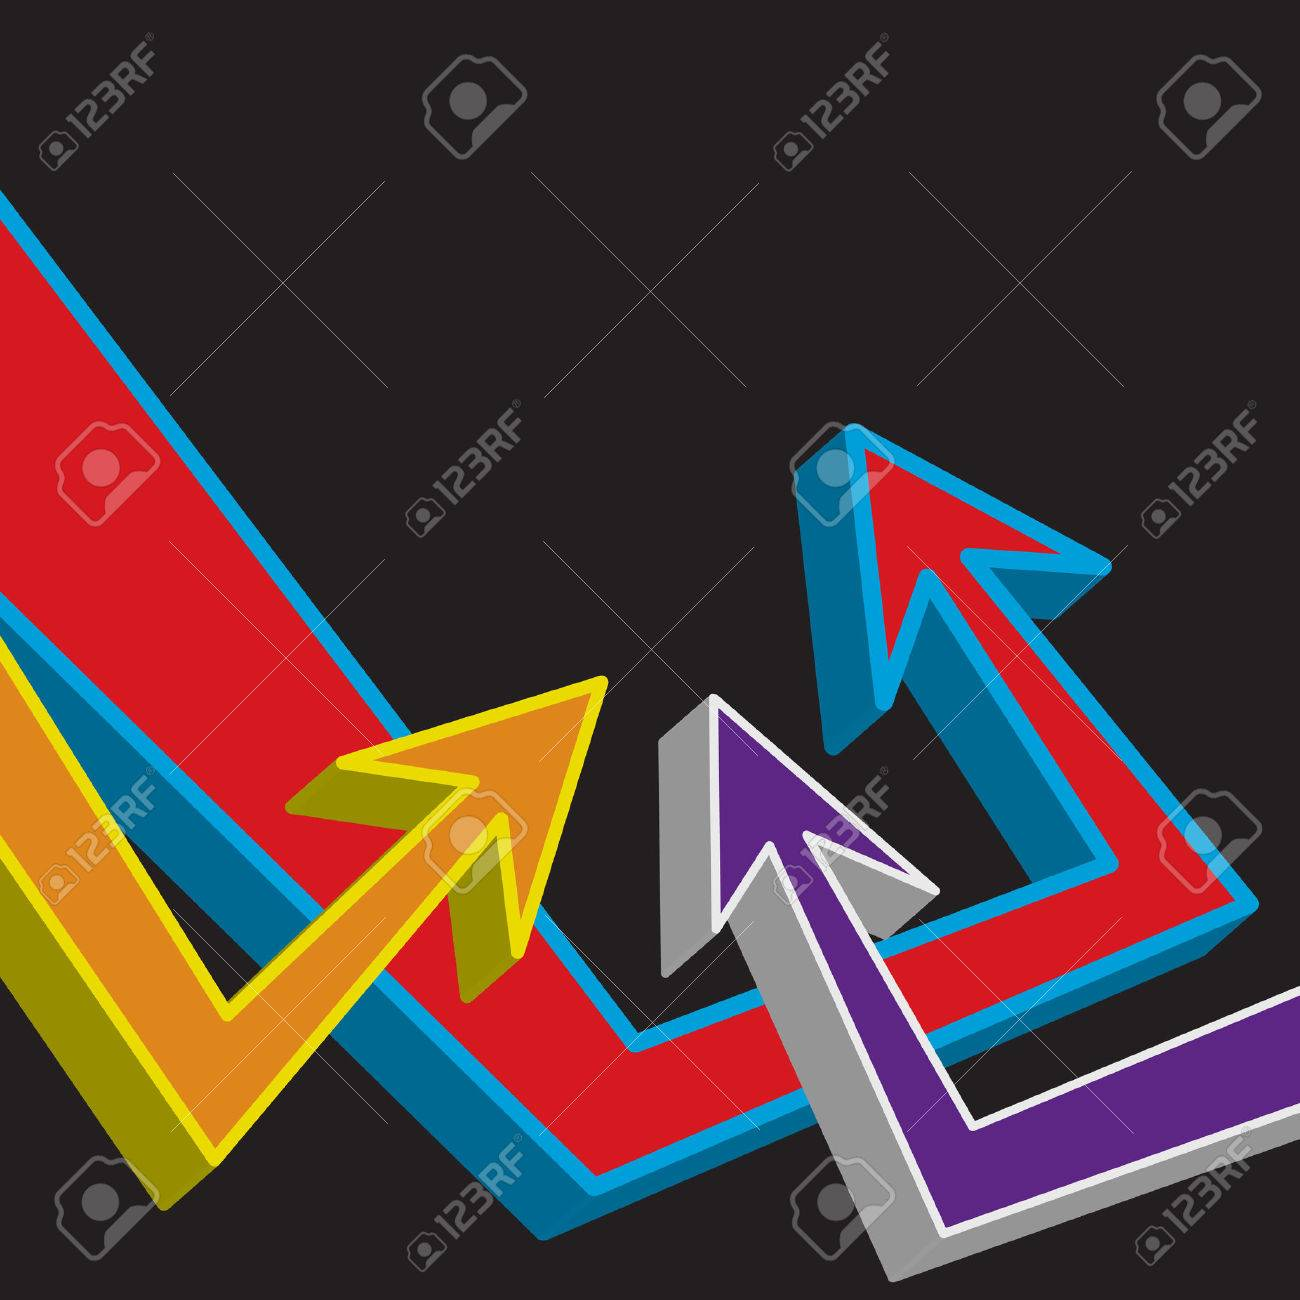 A funky urban layout with graffiti style arrows. Stock Vector - 4324250